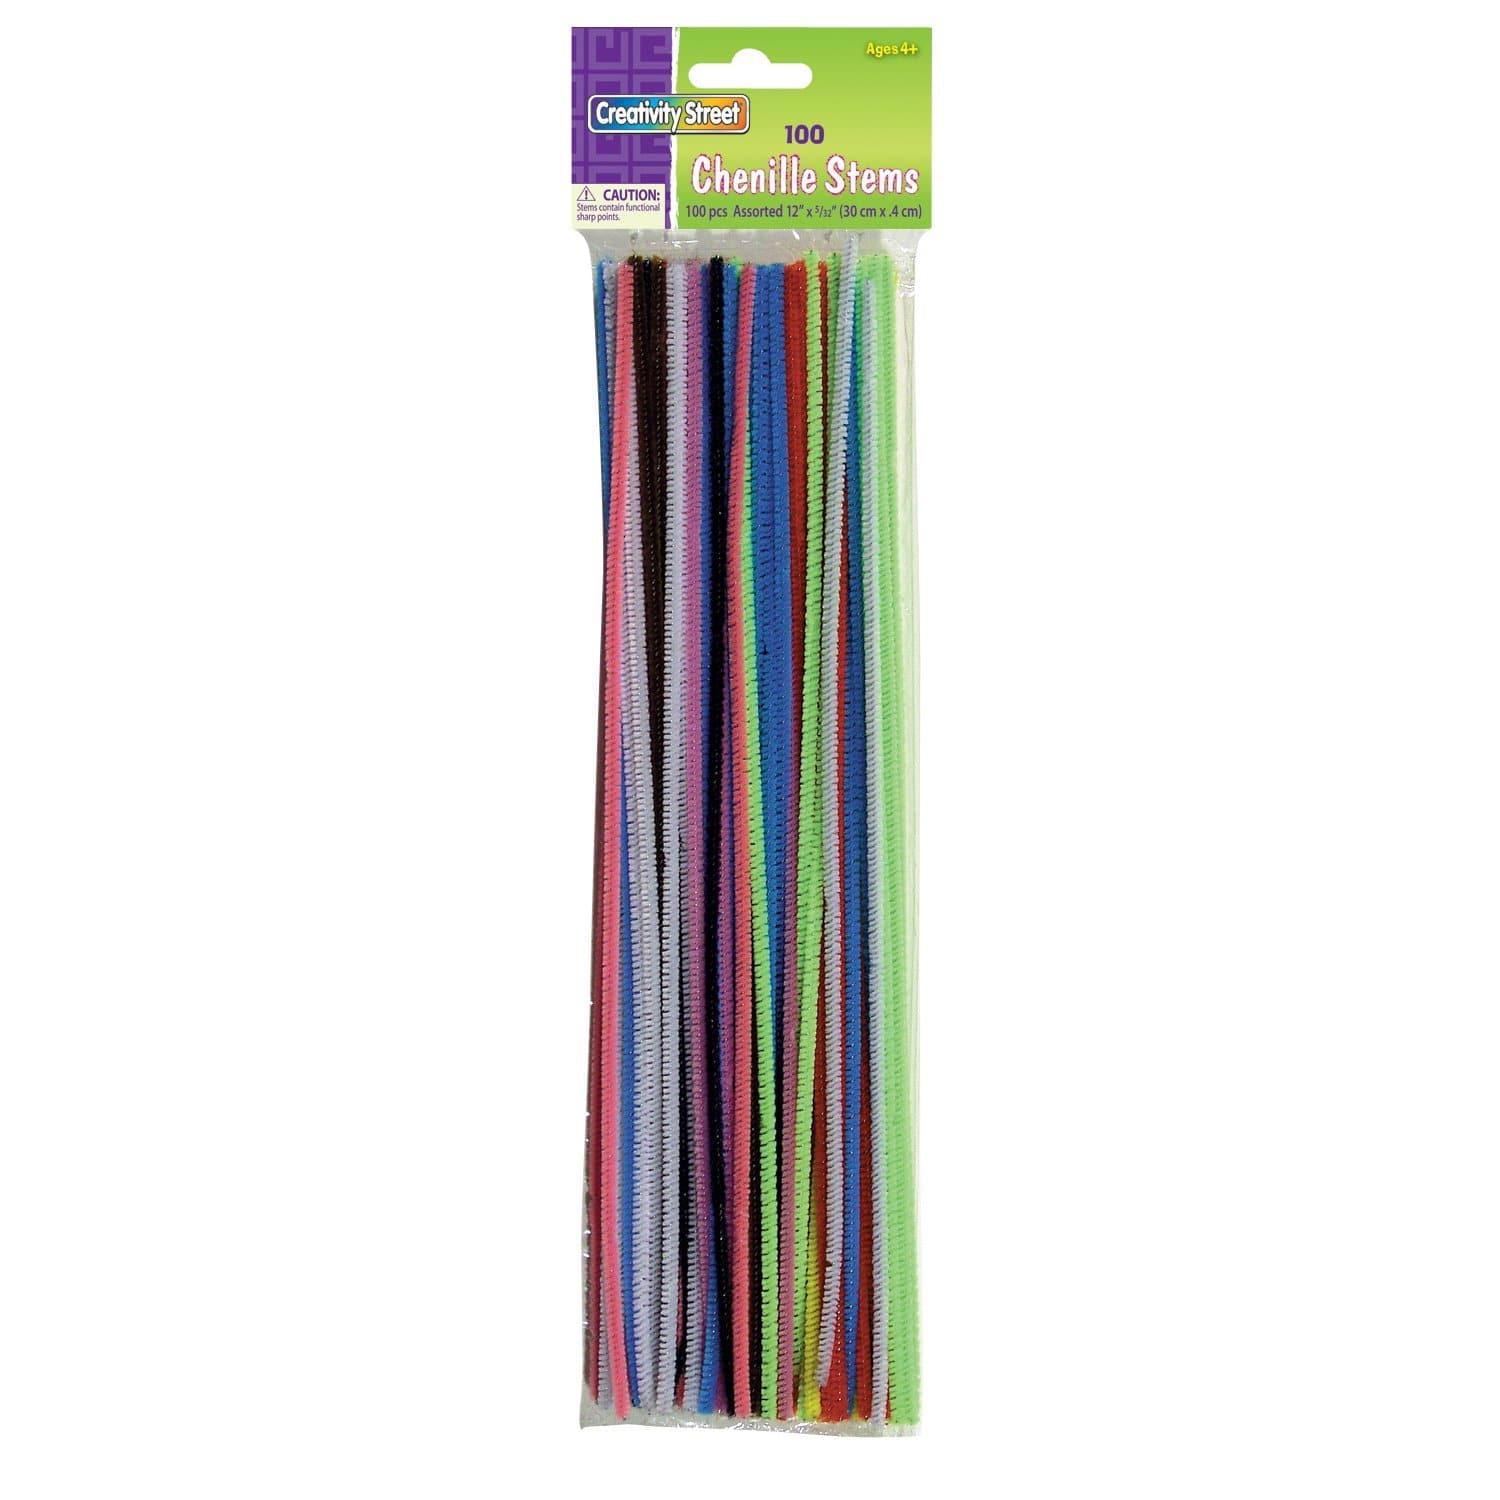 100pk assorted colors Chenille Stems $1 shipped with prime plus $1 digital item reward free